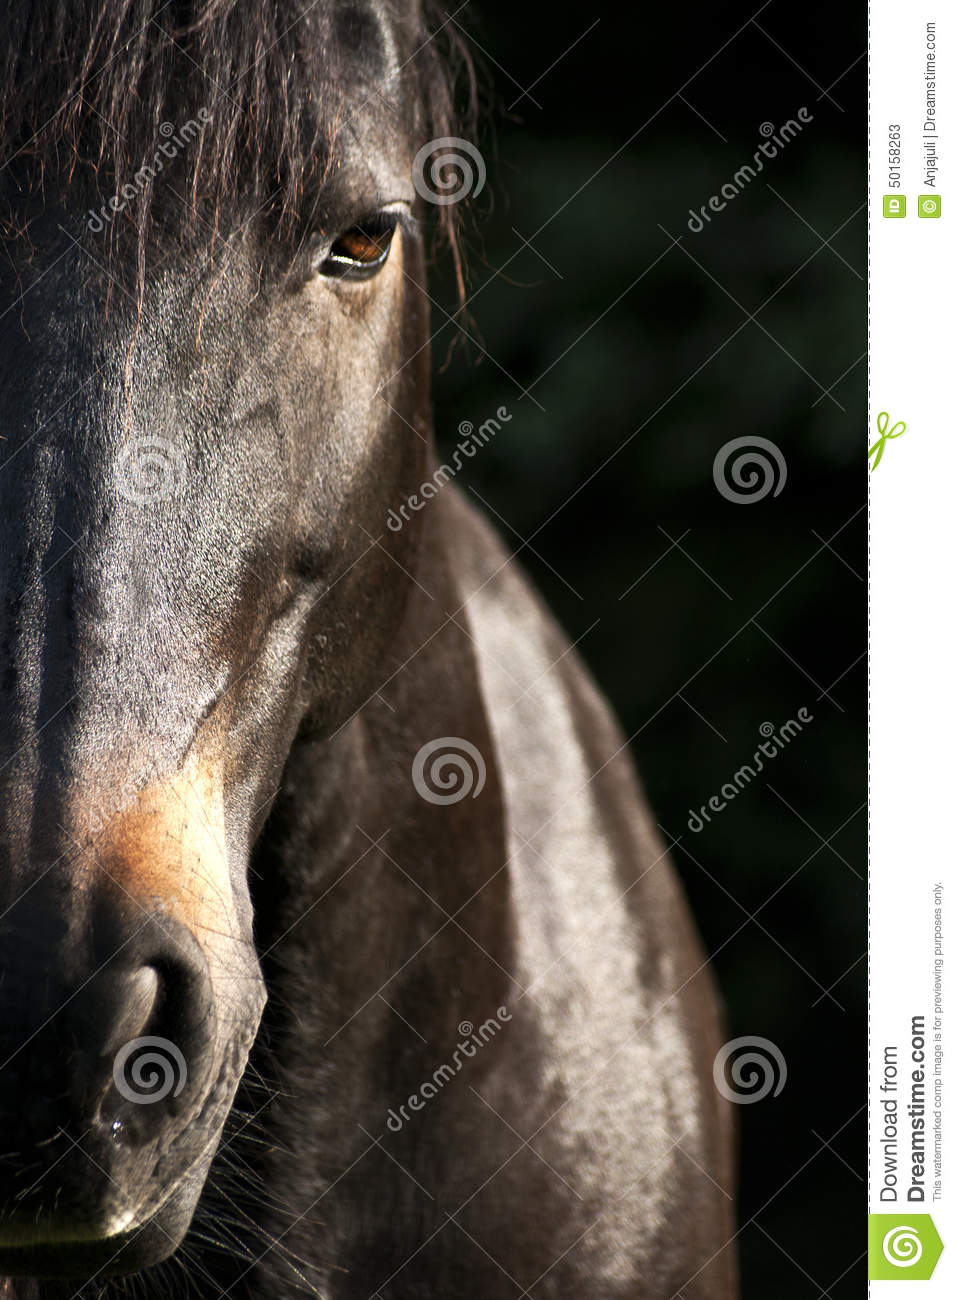 horse face close up frontal stock photo image 50158263